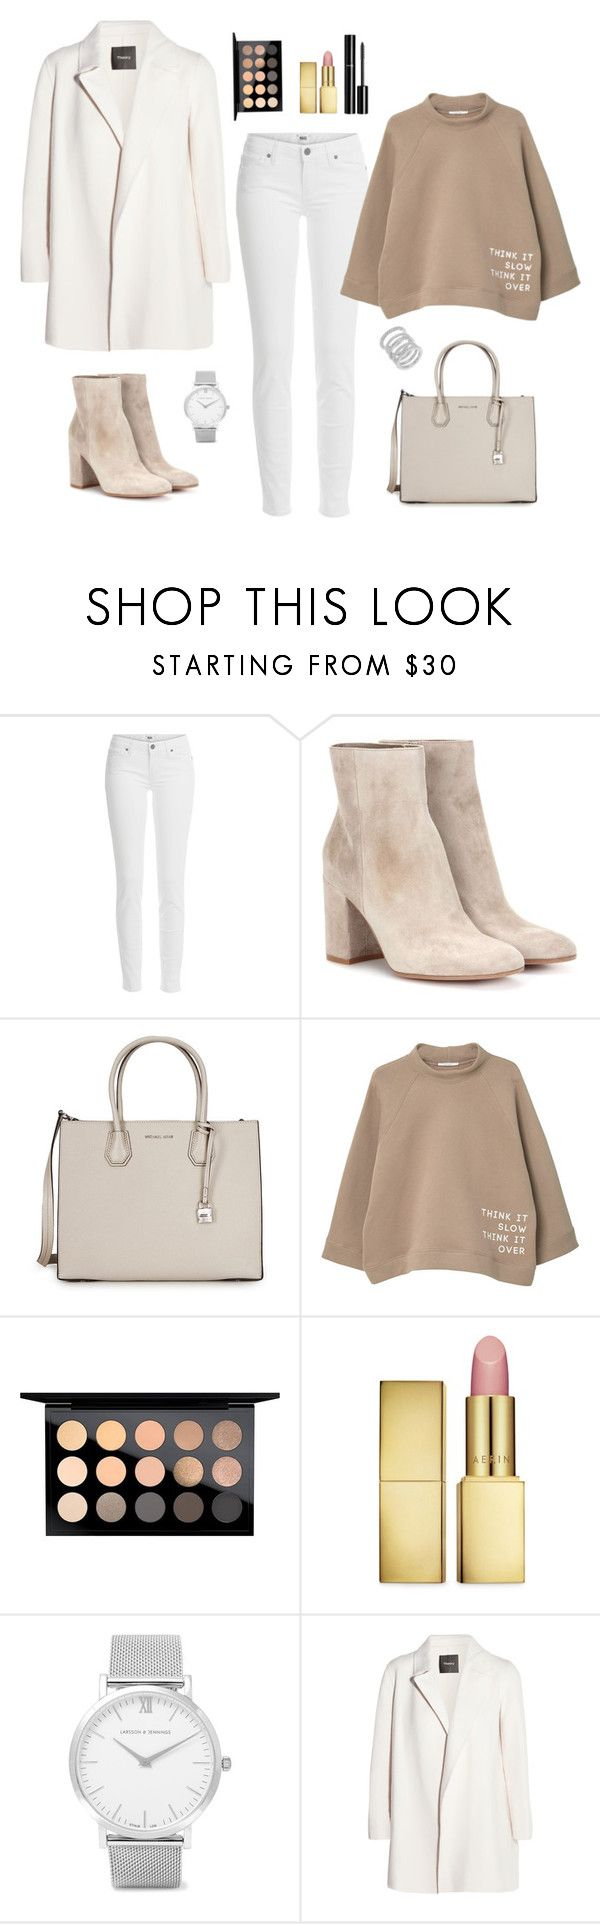 """""""Untitled #323"""" by bajka2468 ❤ liked on Polyvore featuring Paige Denim, Gianvito Rossi, Michael Kors, MANGO, MAC Cosmetics, AERIN, Chanel, Larsson & Jennings, Theory and Cole Haan"""